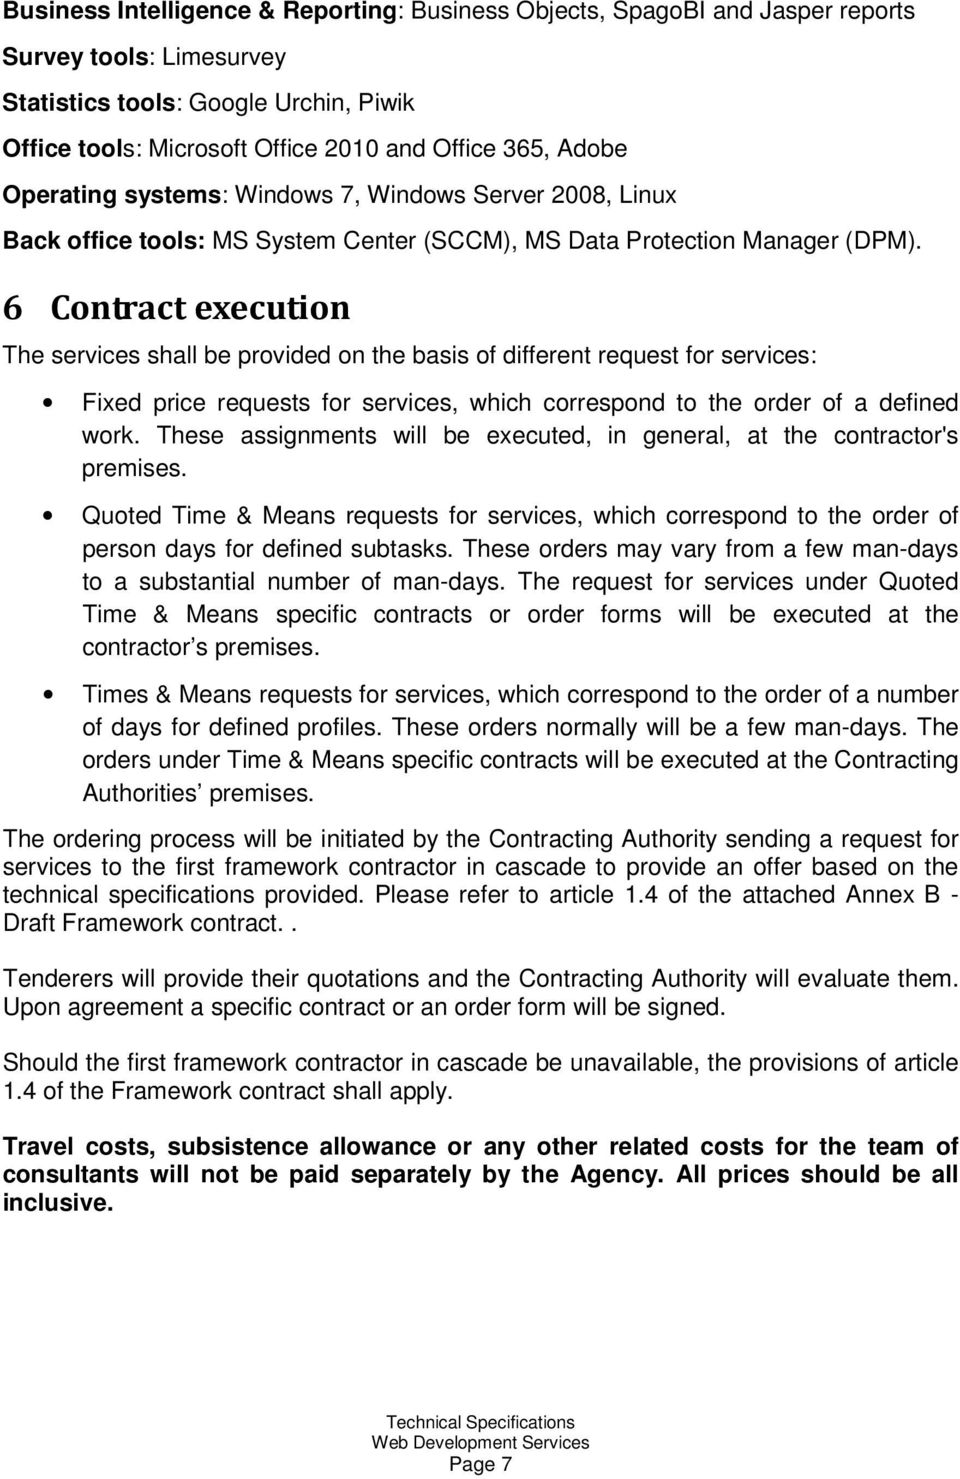 6 Contract execution The services shall be provided on the basis of different request for services: Fixed price requests for services, which correspond to the order of a defined work.